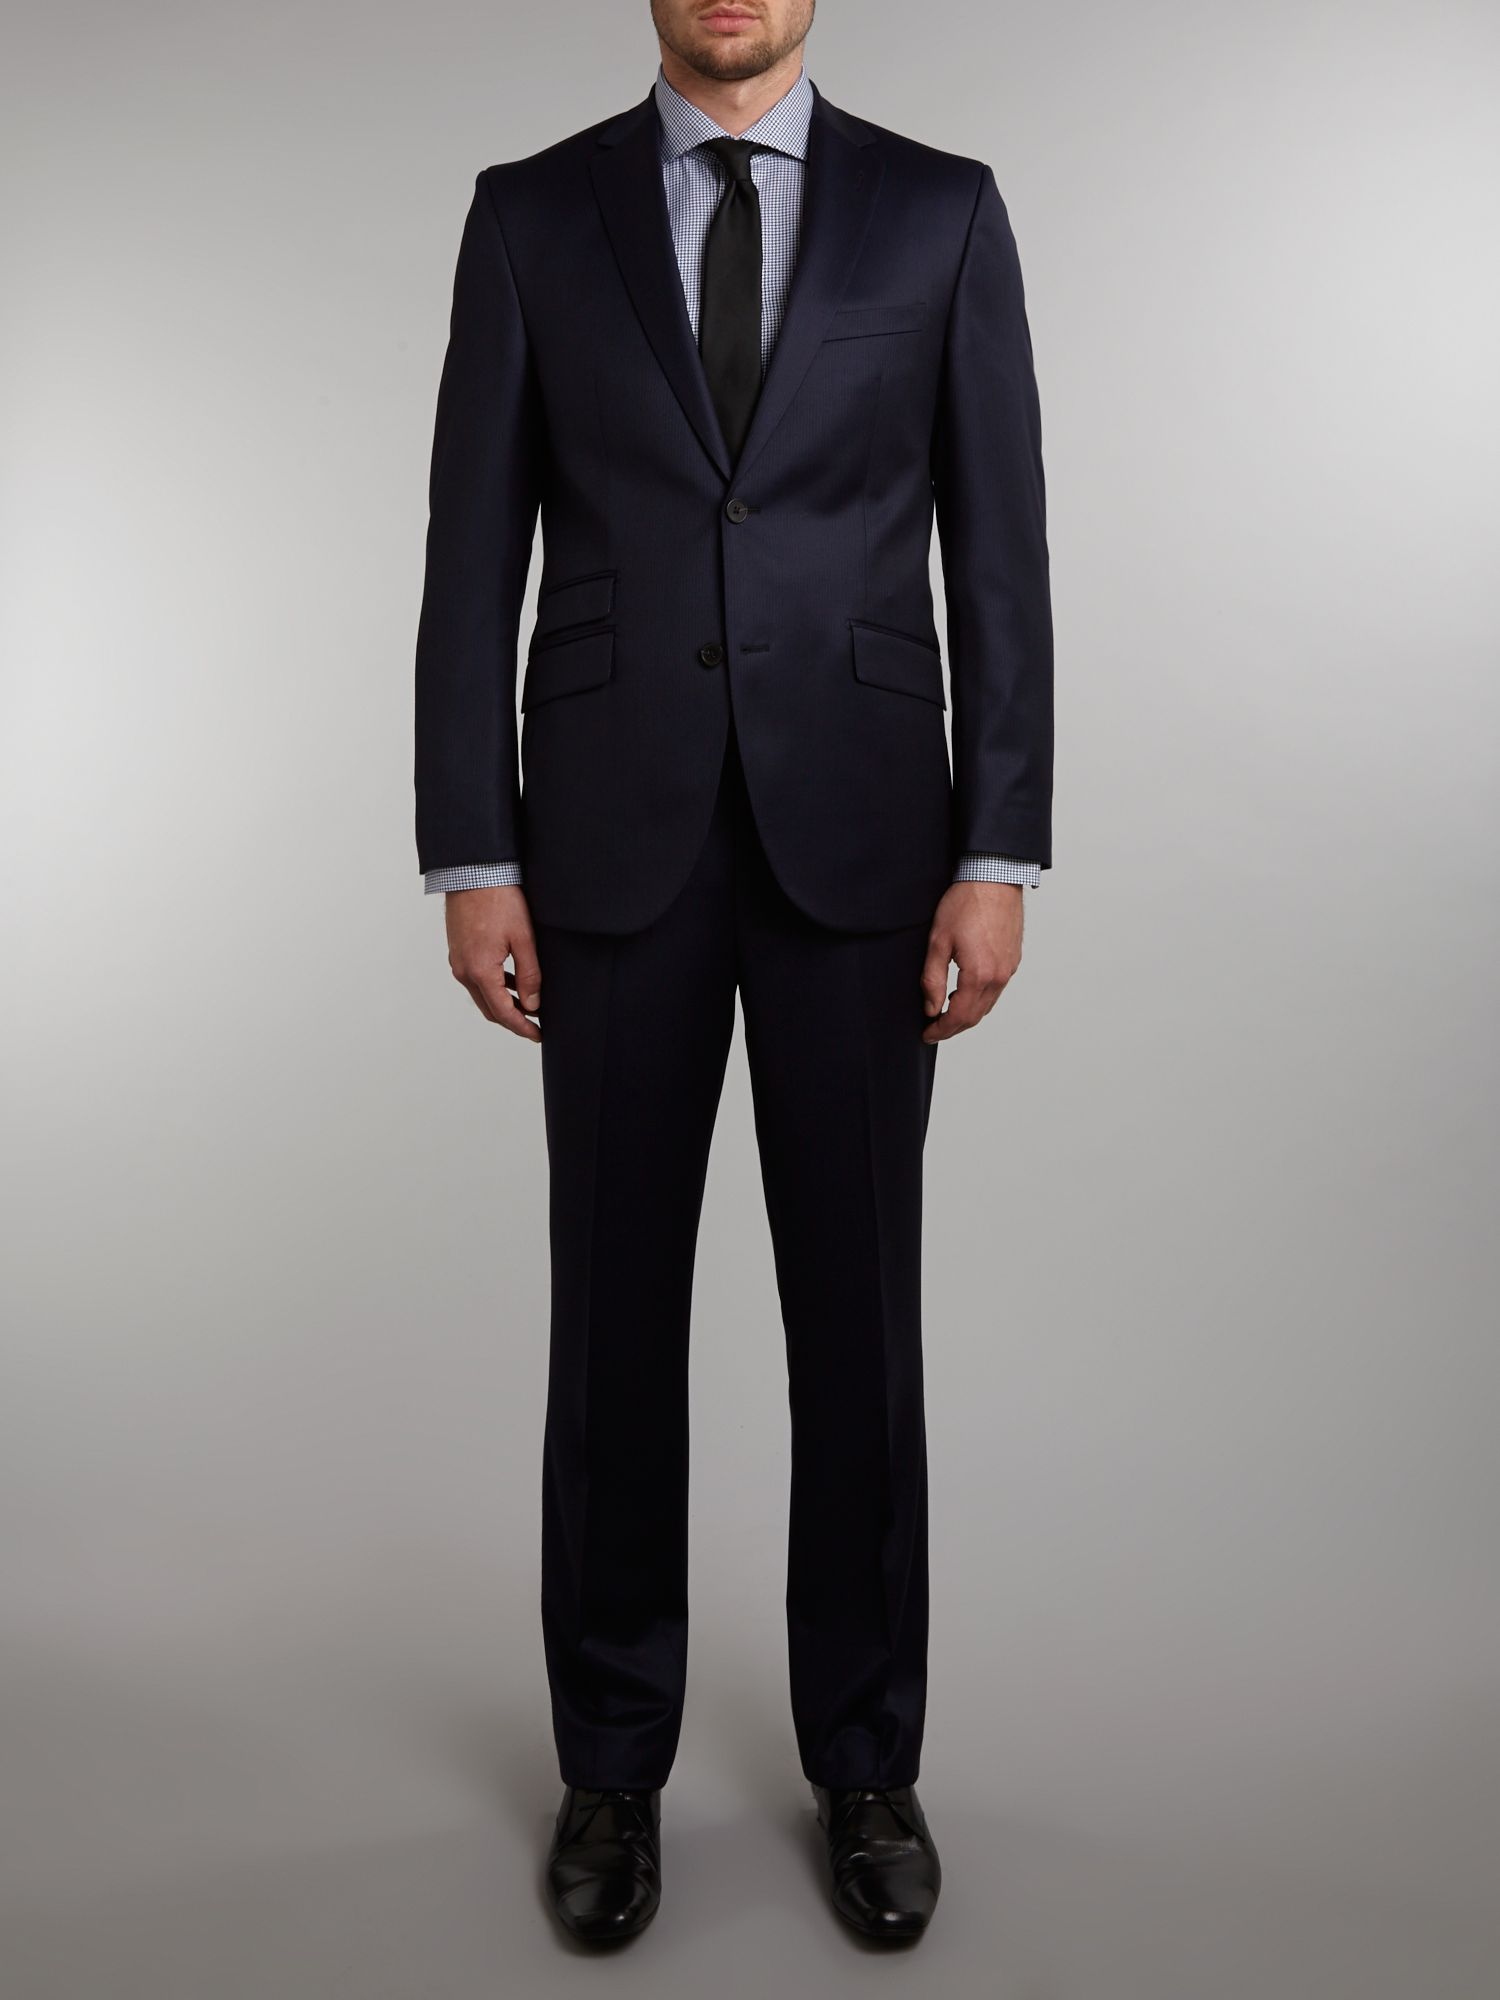 Randolph subtle blue stripe regular fit suit